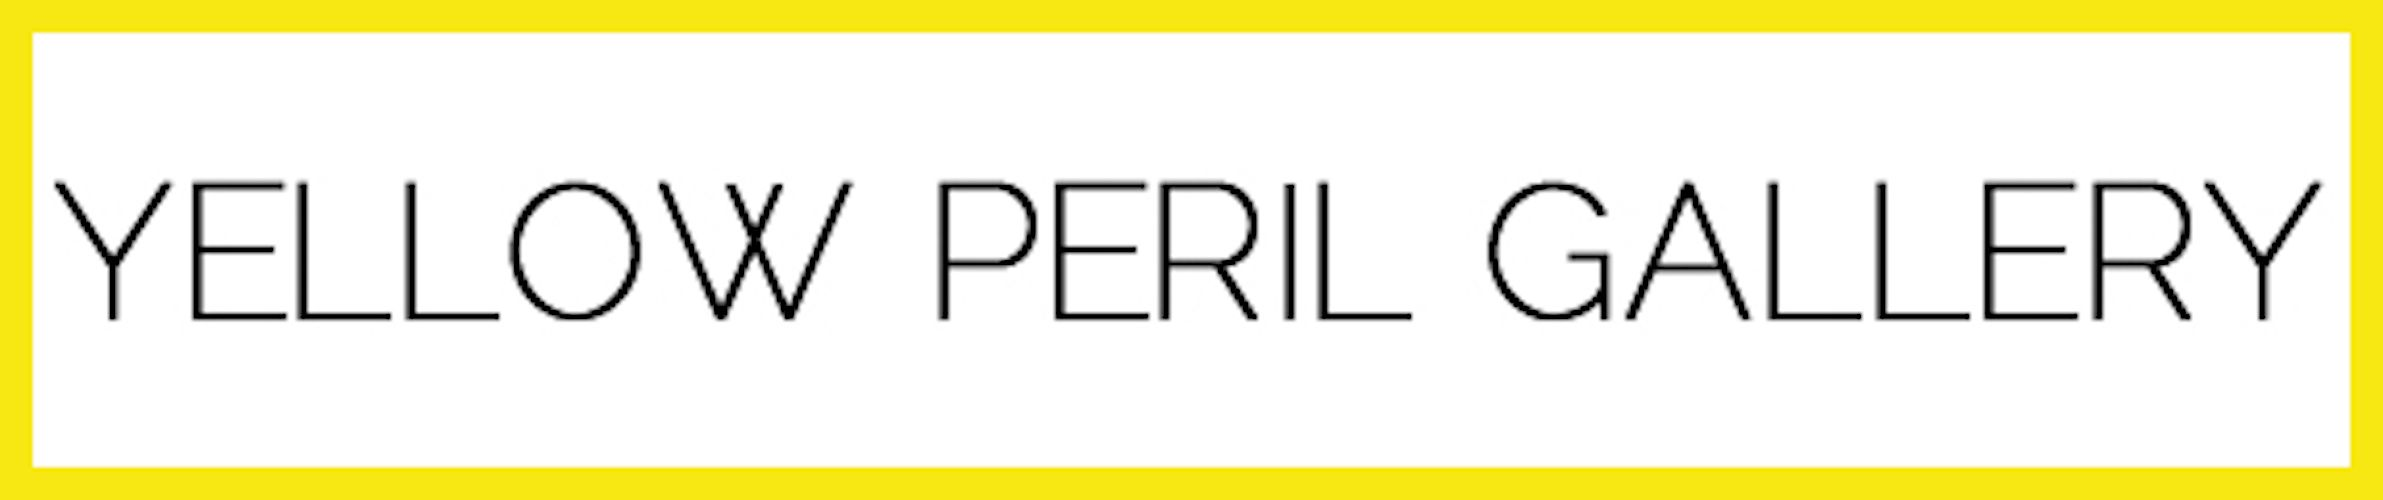 Yellow Peril Gallery Logo